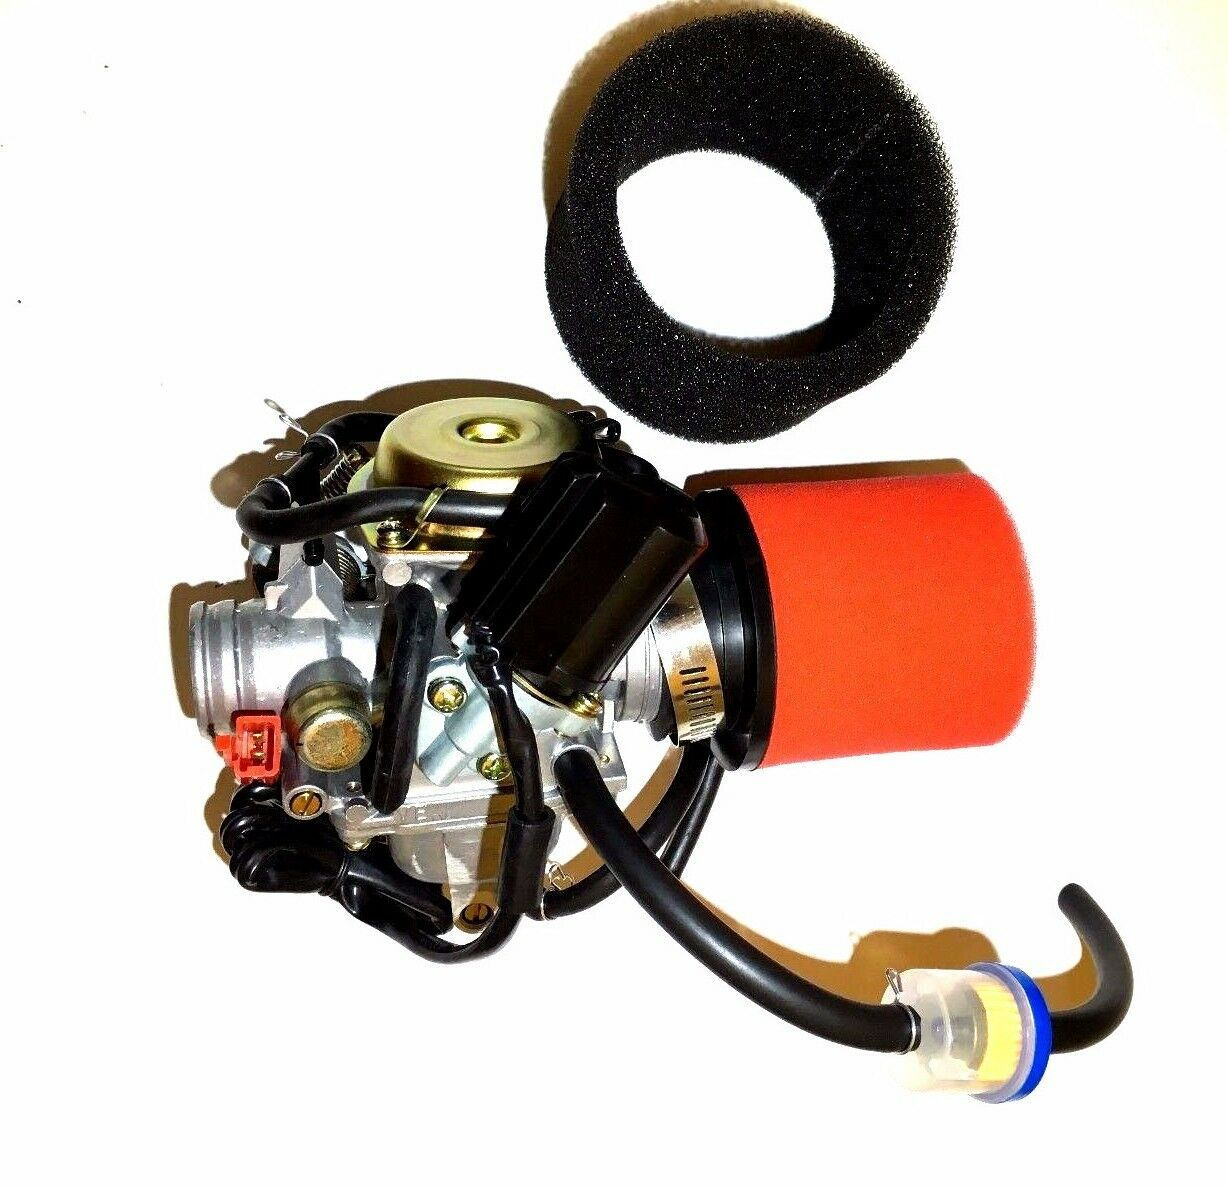 PERFORMANCE CARBURETOR W/ 2 STAGE FILTER HAMMERHEAD TWISTER 150 150CC GO KART